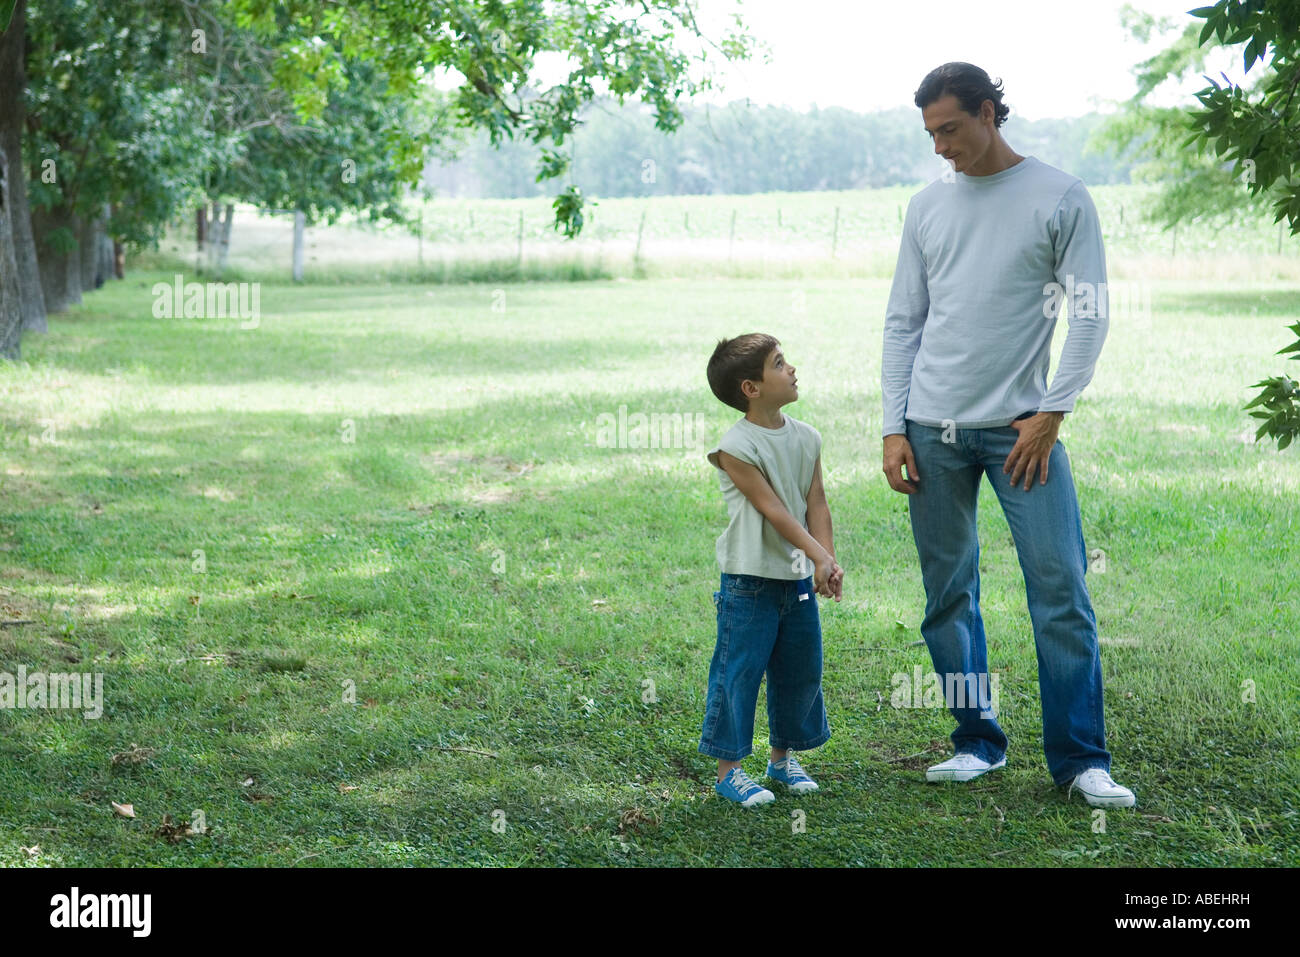 Father and son standing outside on grass, looking at each other - Stock Image